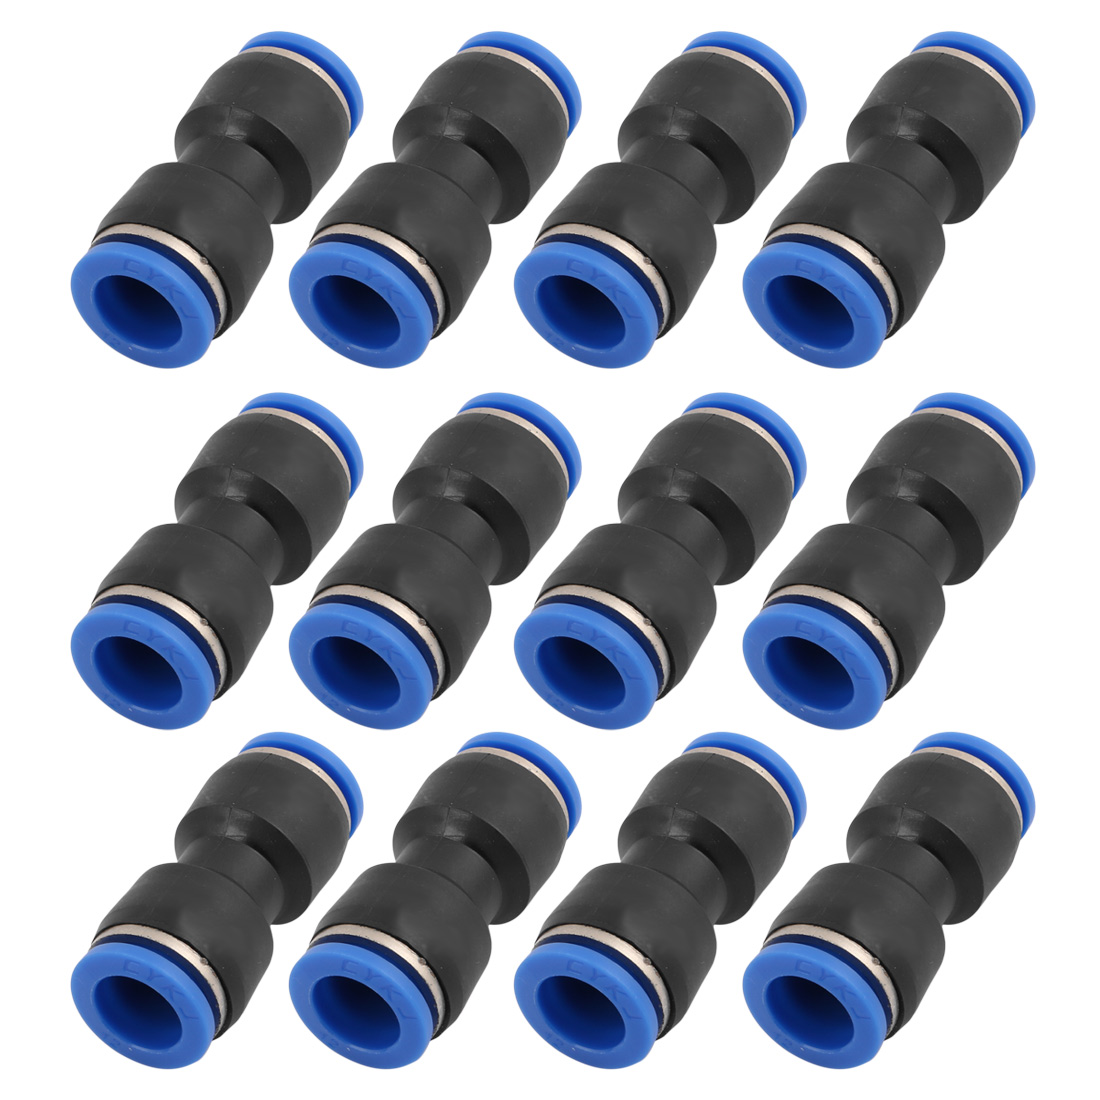 10Pcs 12mm Dia 2 Way Straight Tube Hose Pneumatic Air Quick Fitting Push In Connector